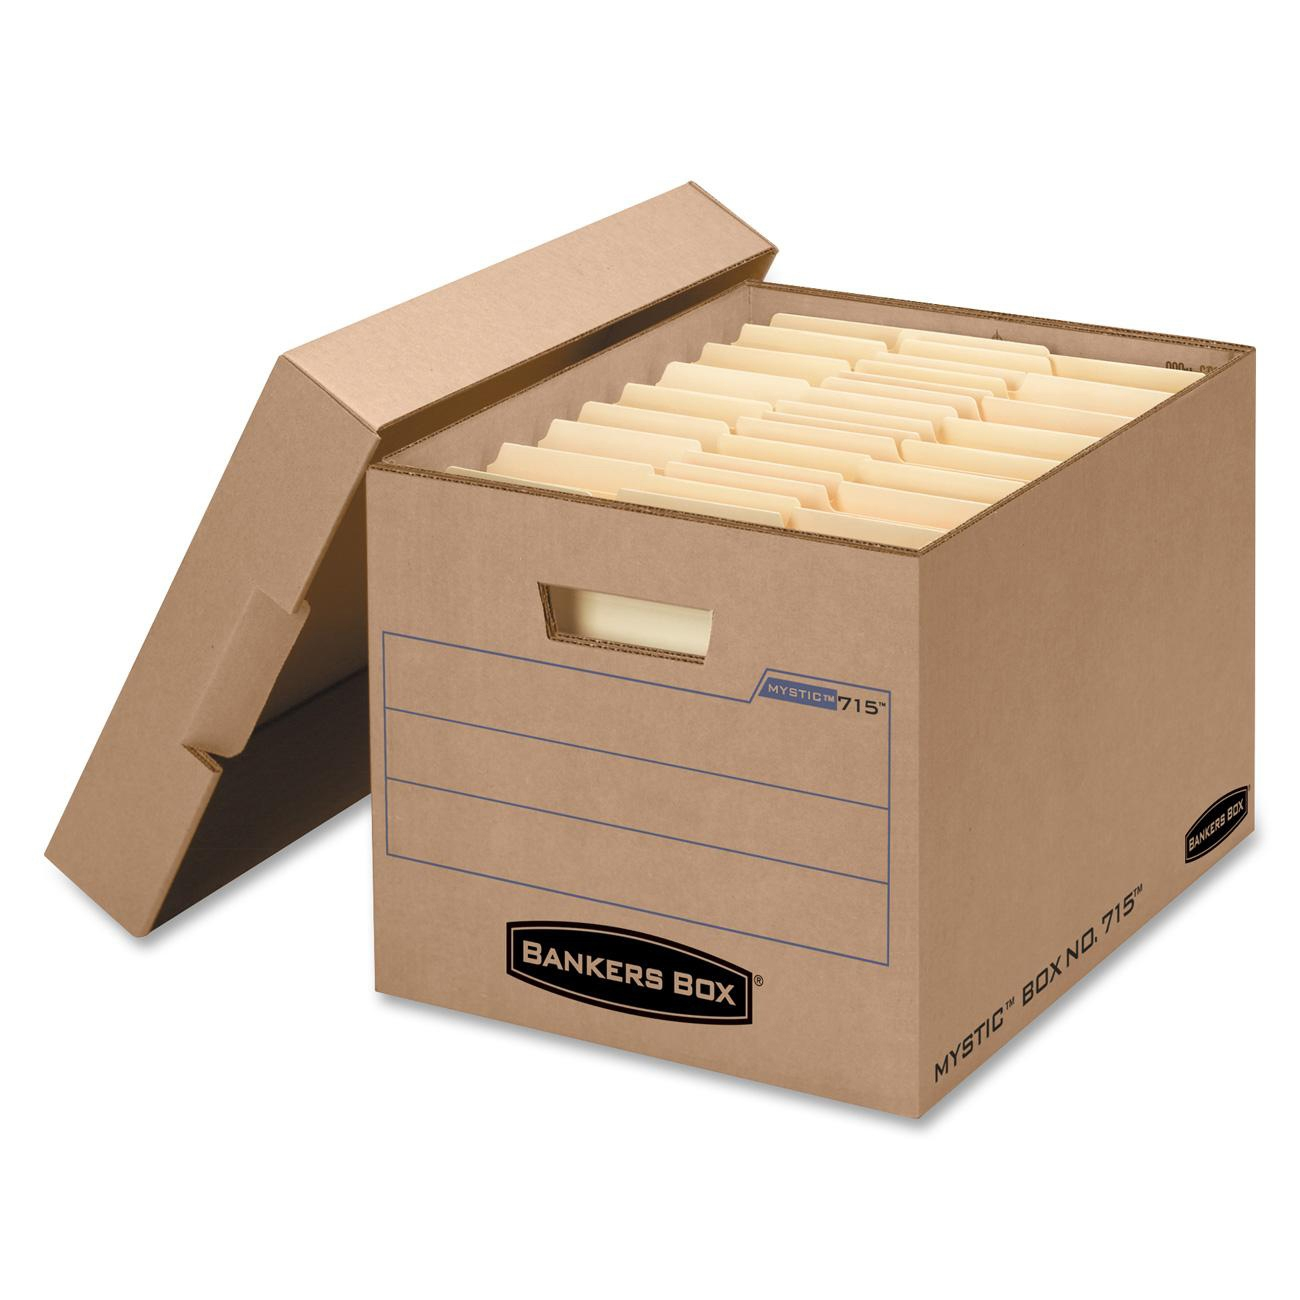 Mystic Storage Box - 6 Cartons, Special Price, Special Delivery